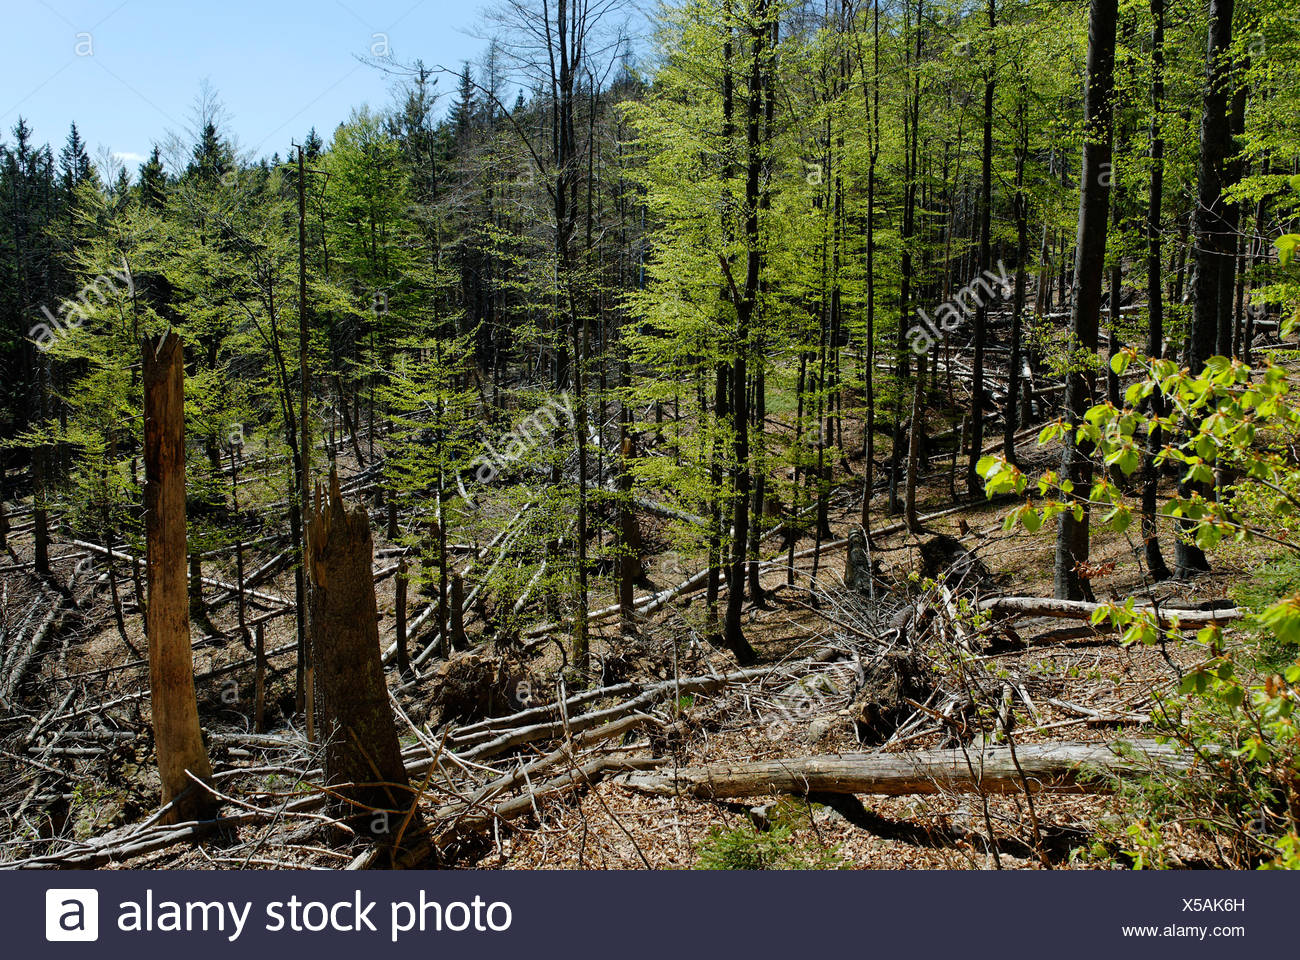 Damages to the forest at Rachel mountain, Bavarian Forest National Park, Lower Bavaria, Germany, Europe Stock Photo